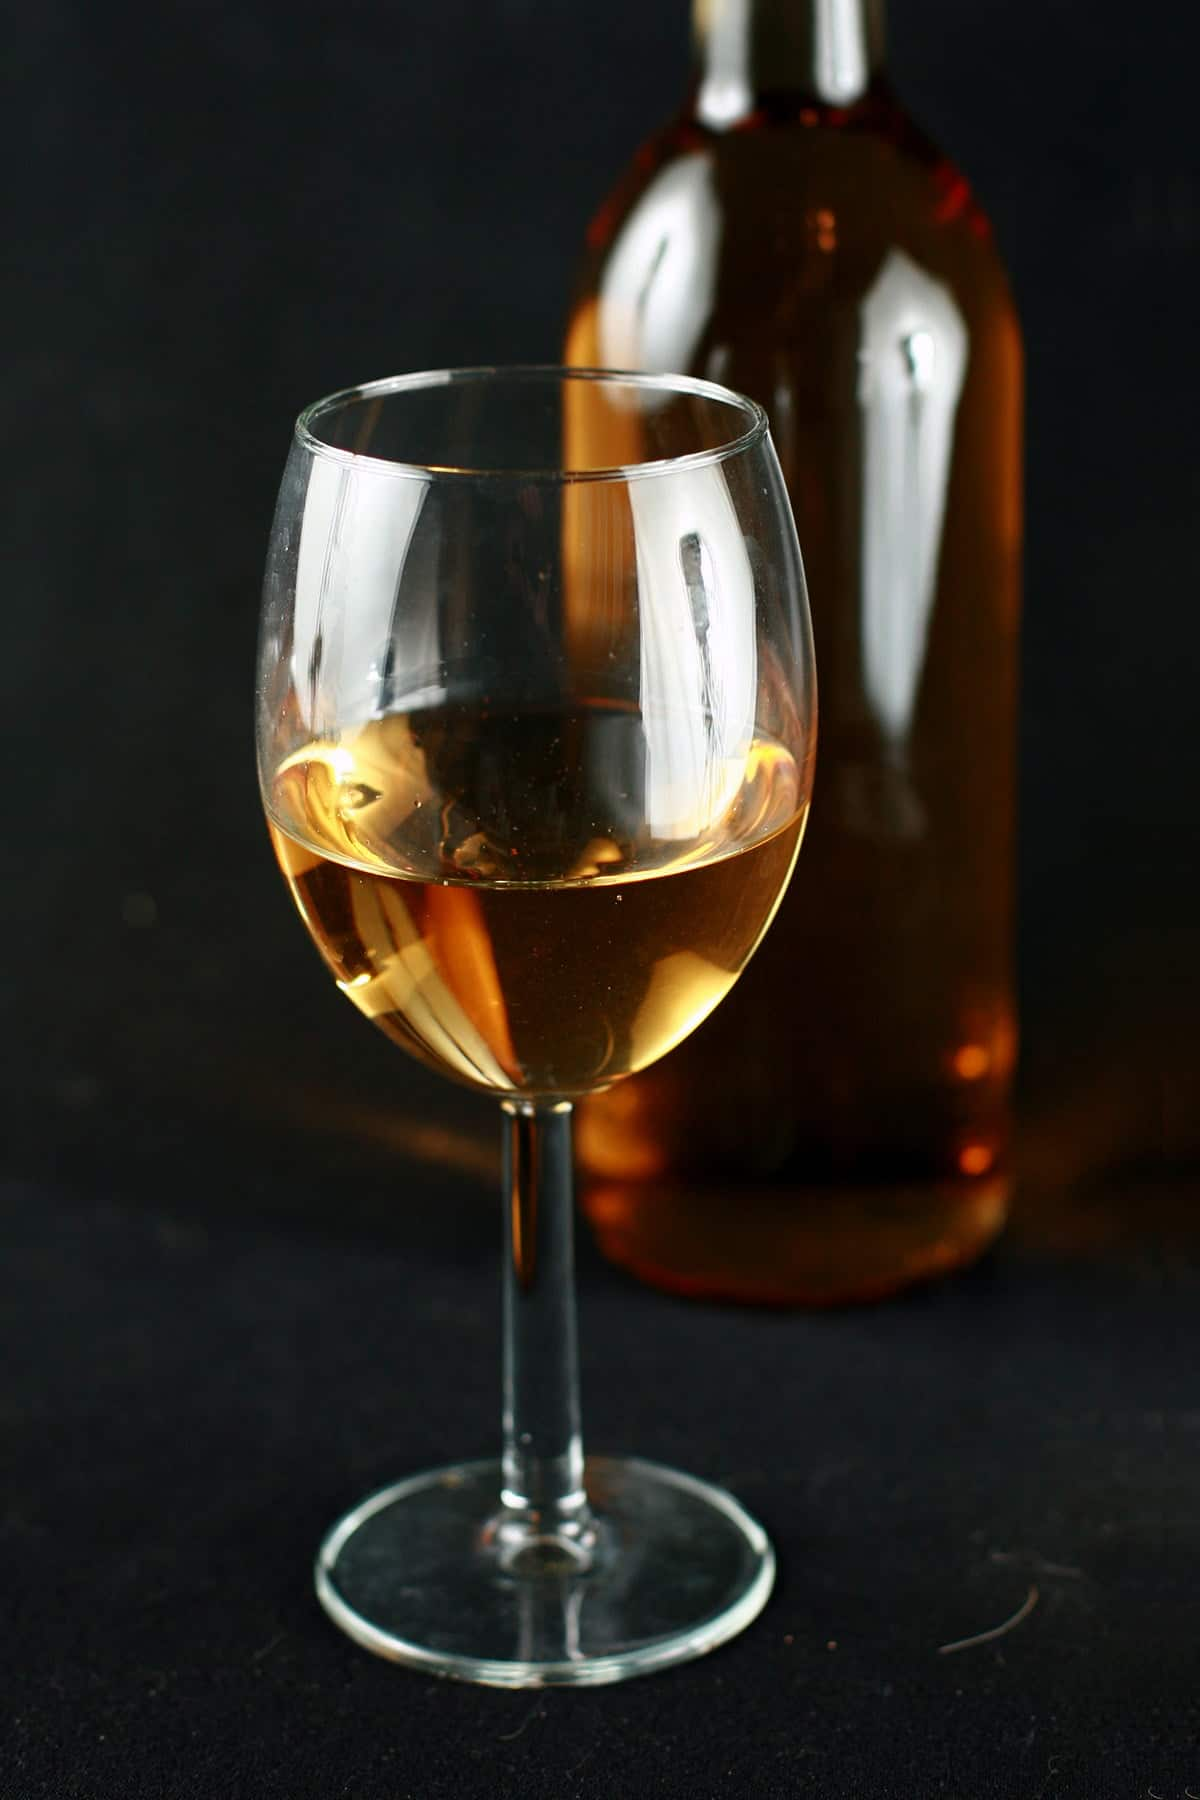 A wine glass and a wine bottle are filled with golden wine, against a black background.